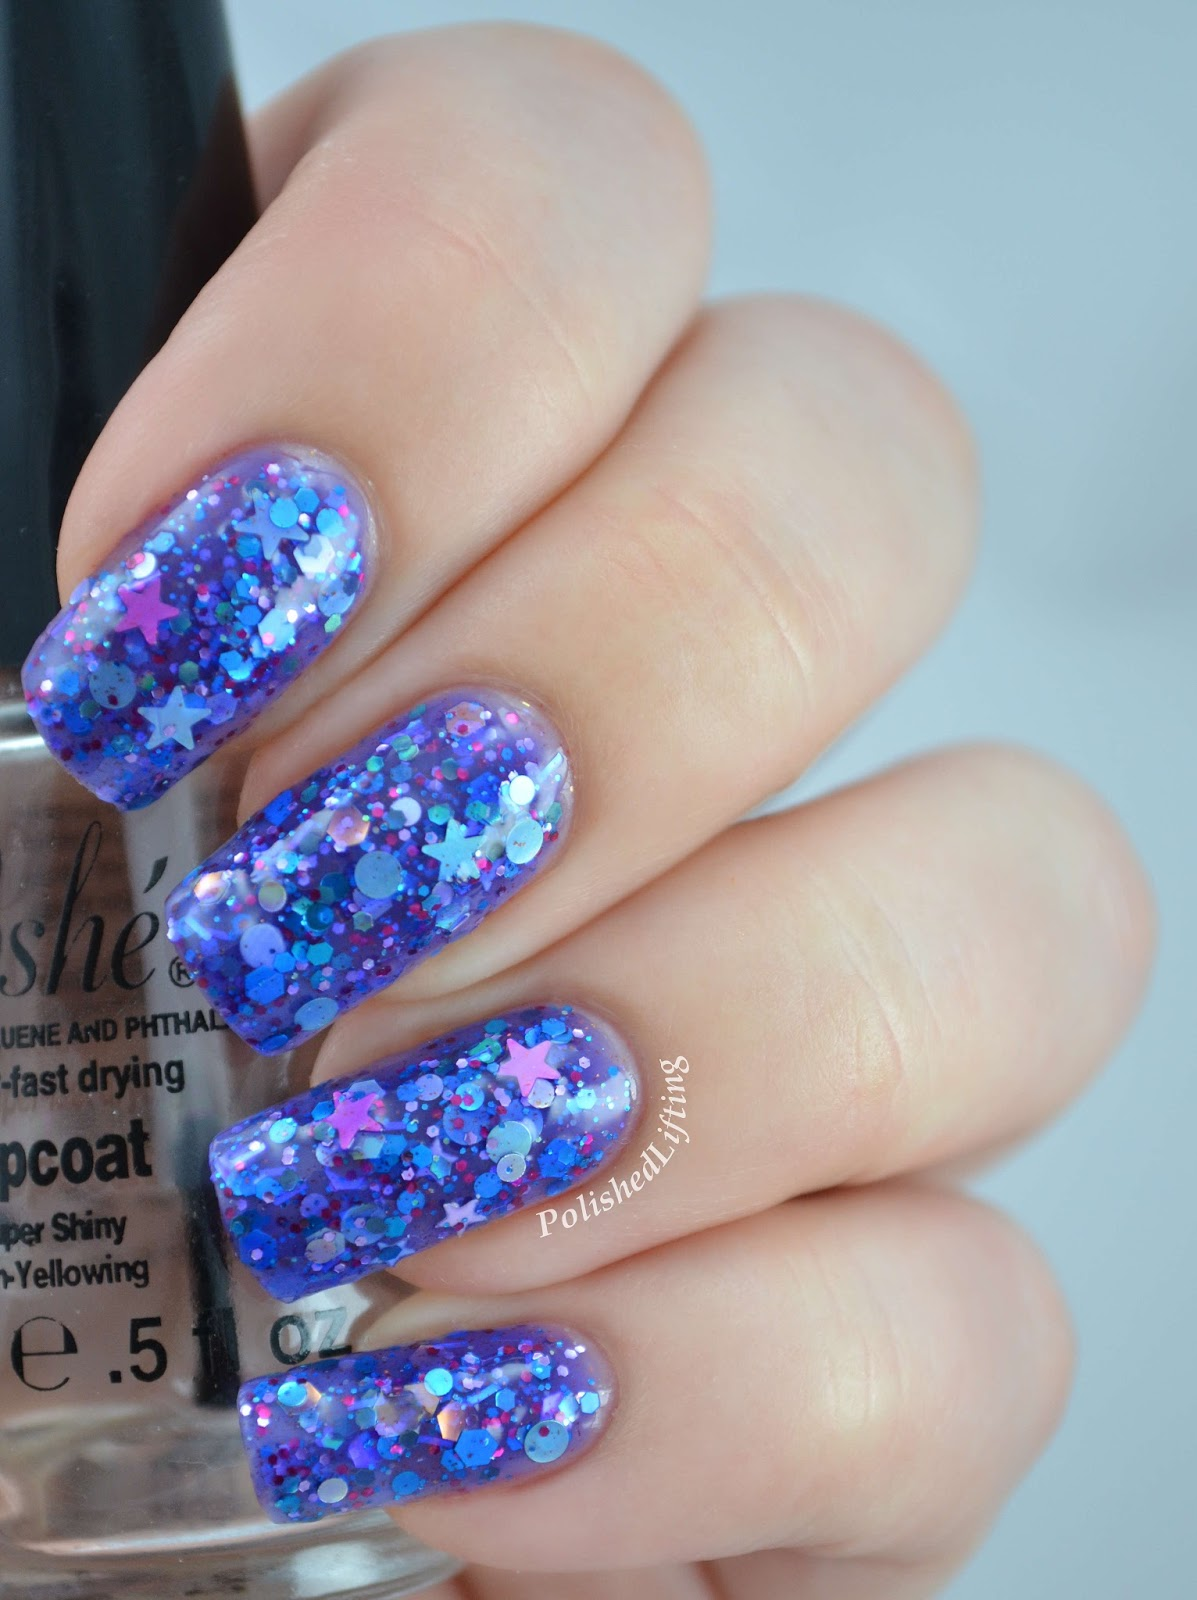 Reverie Nail Lacquer Andromeda Summer 2014